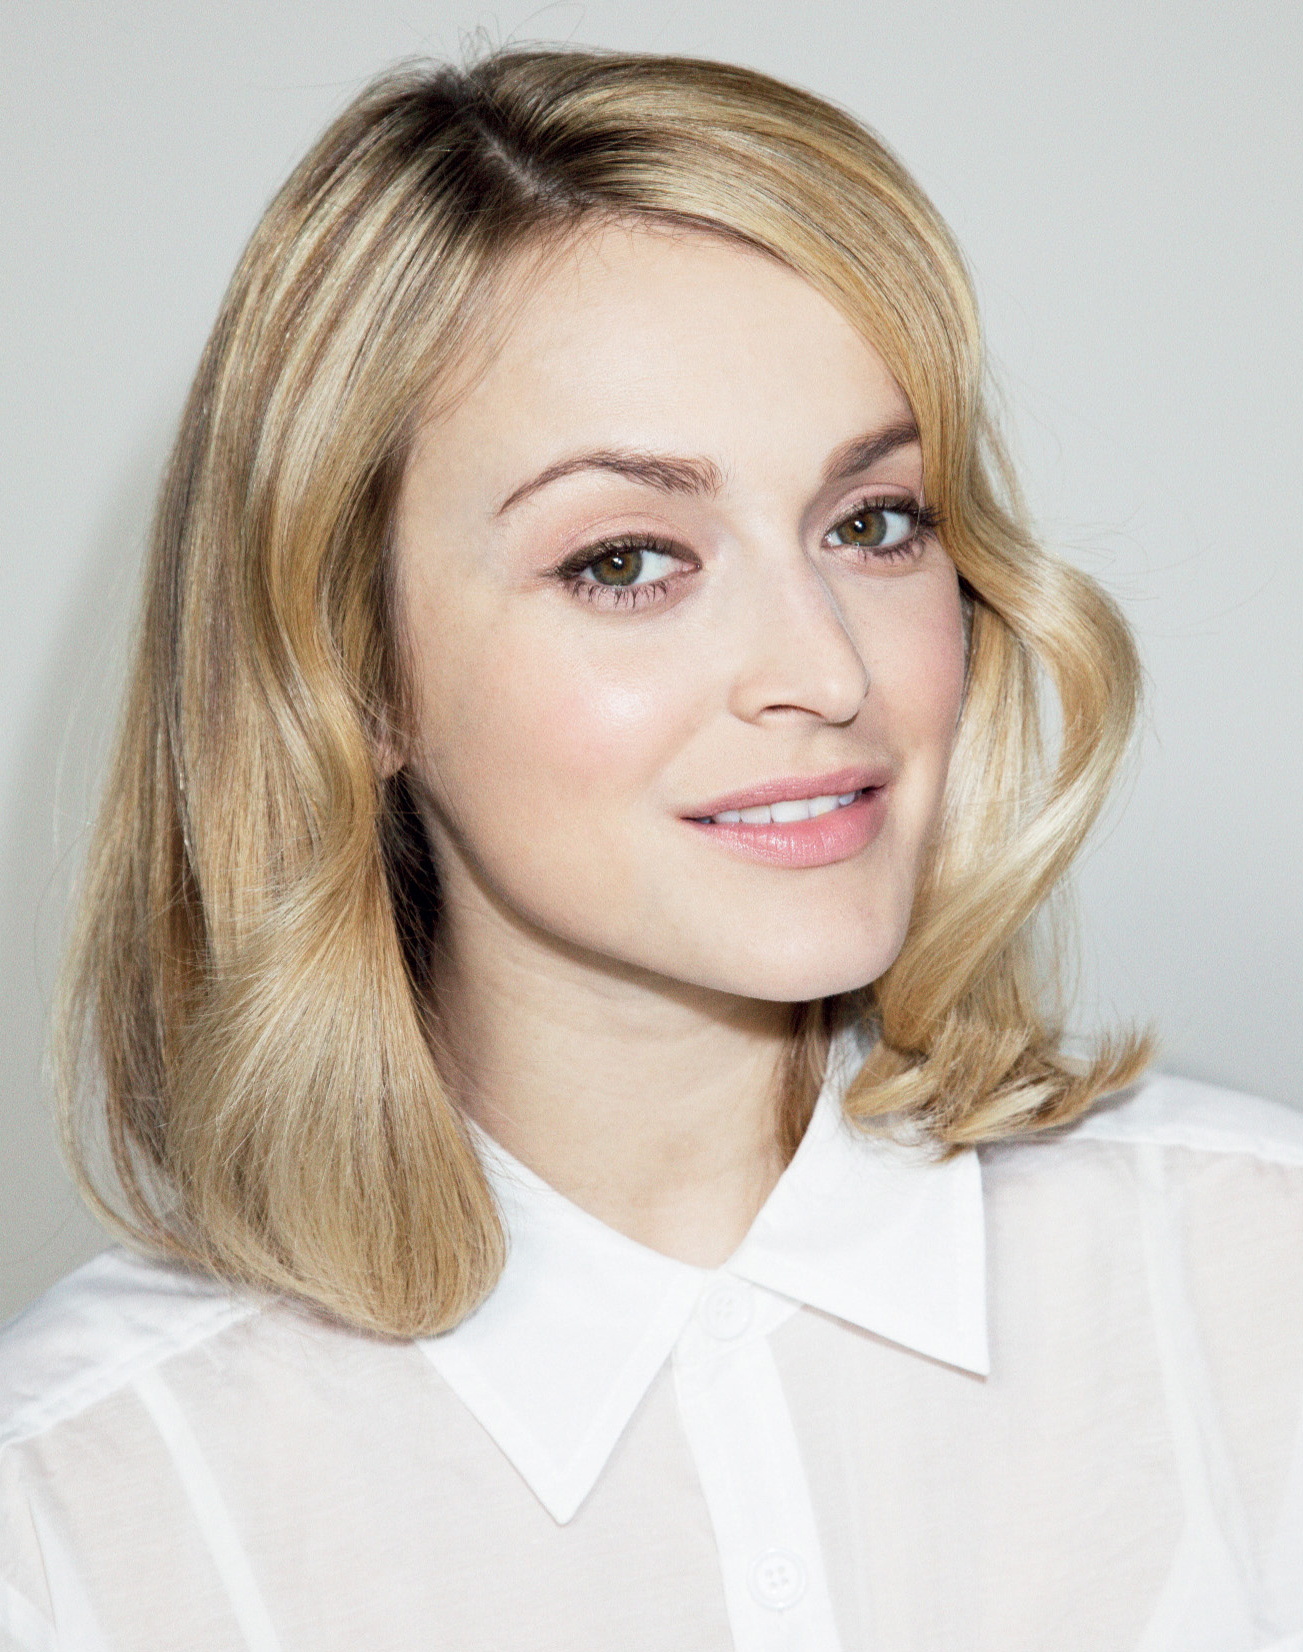 Best Medium Length Hairstyles For Thick Hair Inside Fashionable Blunt Bob Hairstyles With Face Framing Bangs (View 7 of 20)